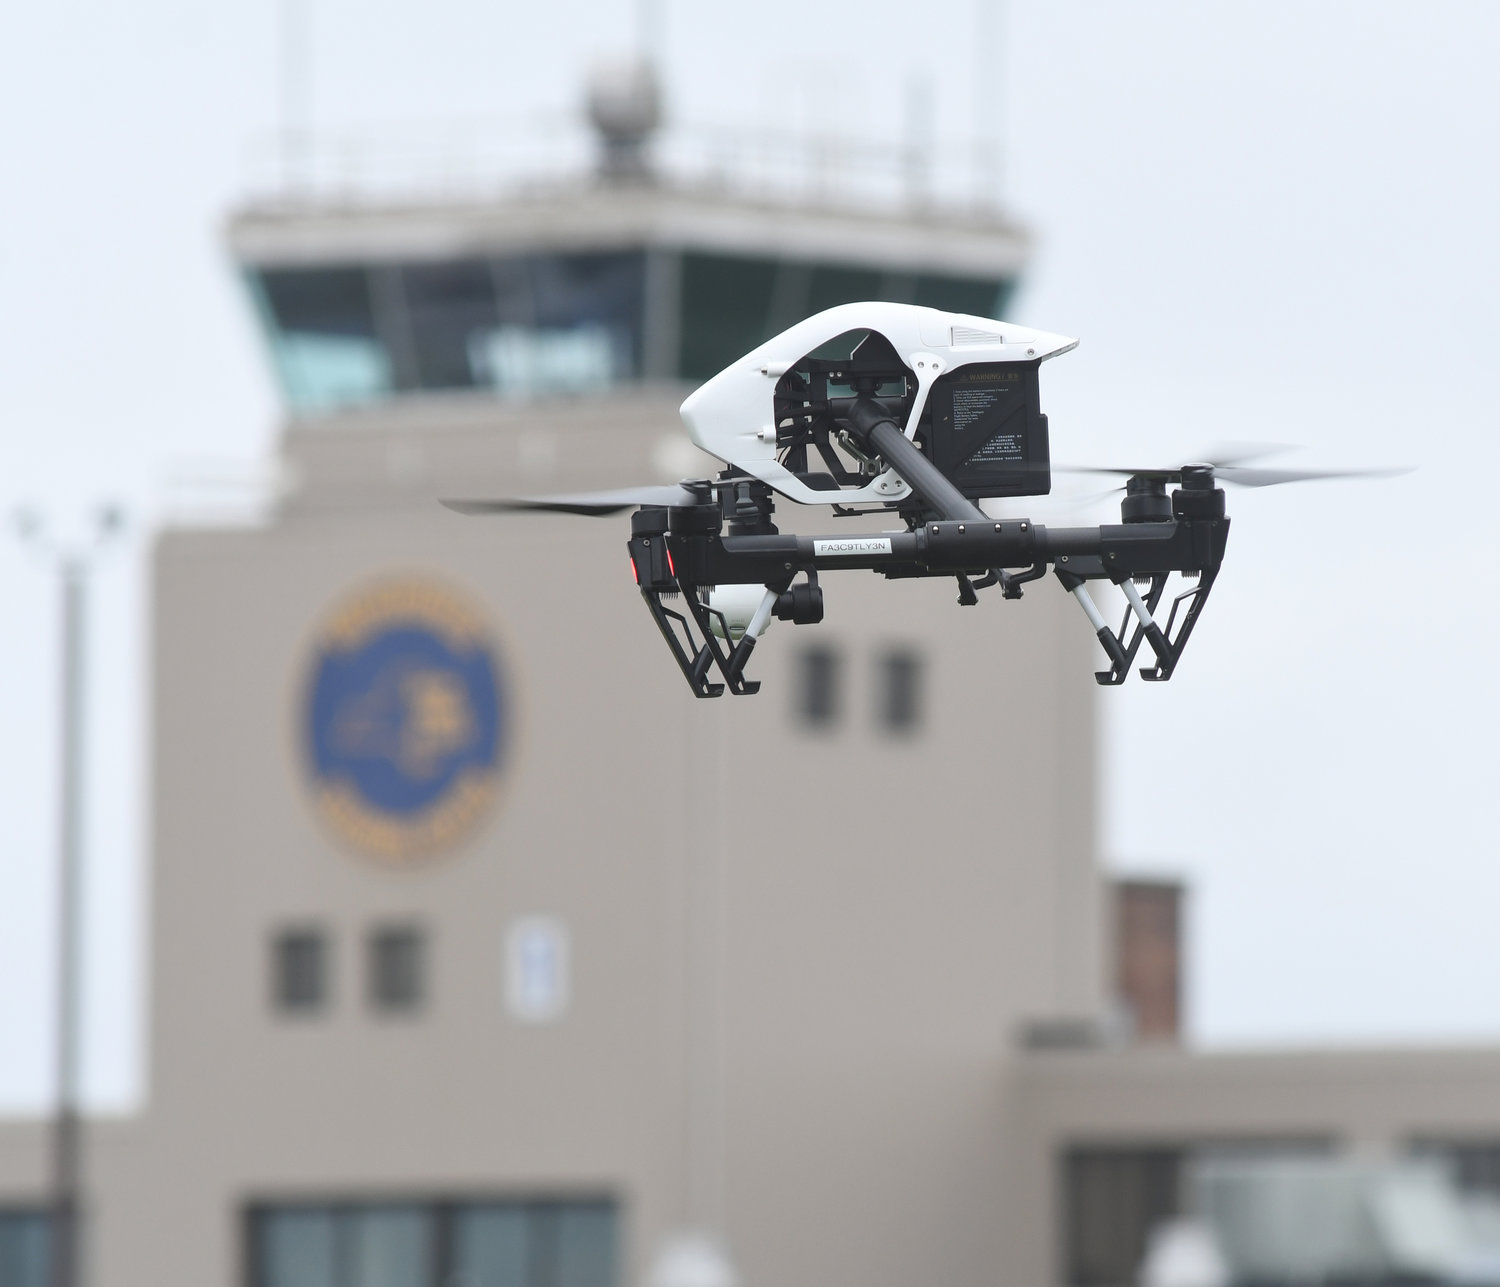 BUZZING THE TOWER — A training drone hovers above the ground at the state Preparedness Training Center in Whitestown on Thursday. A dozen officials from across the state attended a basic drone operator training course this week at the former county airport.